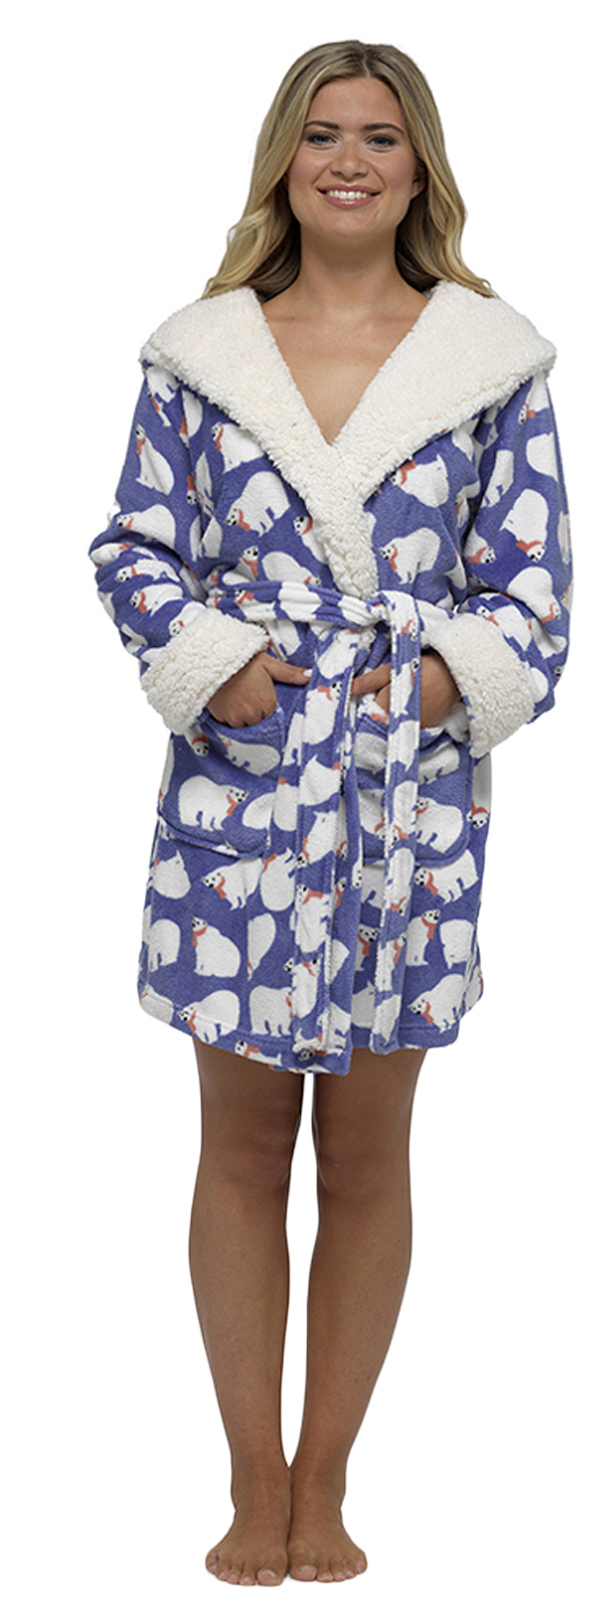 Find hooded dressing gowns for women at ShopStyle. Shop the latest collection of hooded dressing gowns for women from the most popular stores - all in.